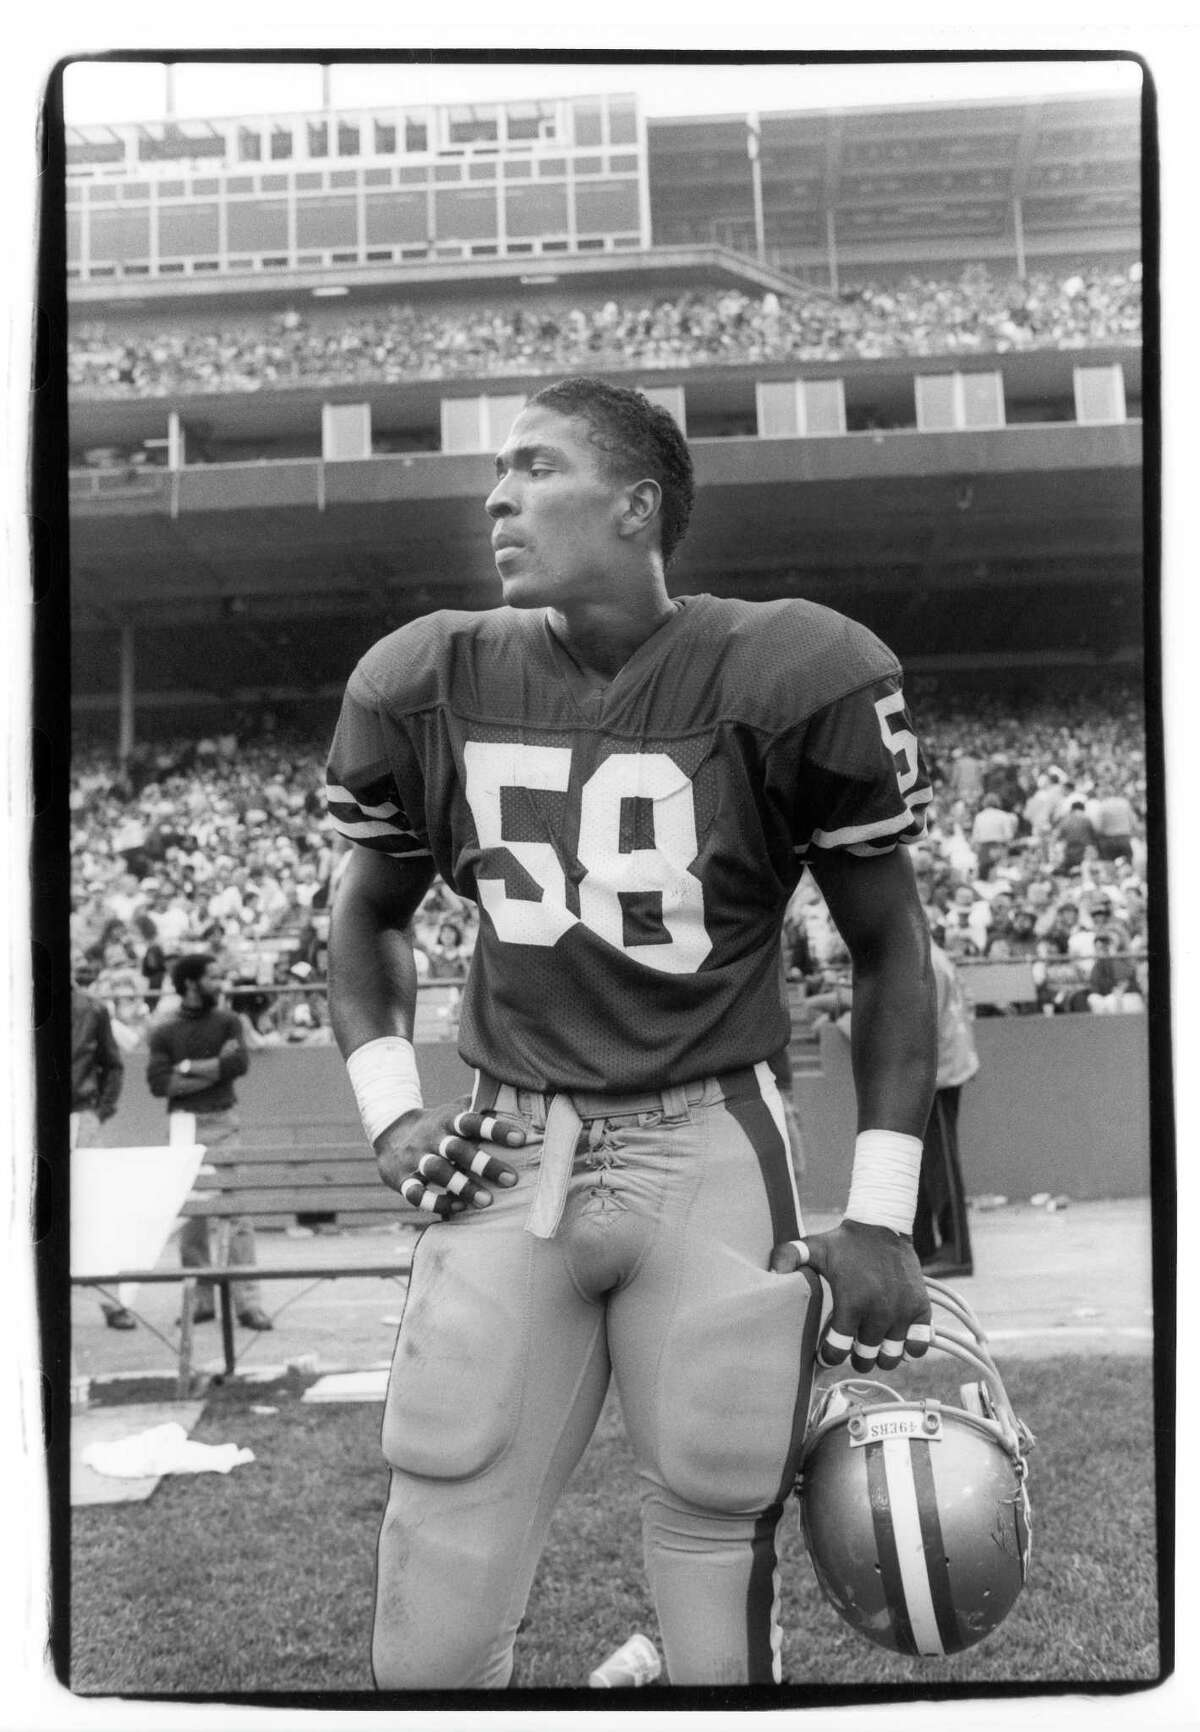 SAN FRANCISCO - NOVEMBER 3: Linebacker Keena Turner #58 of the San Francisco 49ers stands on the sideline during the game against the Philadelphia Eagles at Candlestick Park on November 3, 1985 in San Francisco, California. The Niners defeated the Eagles 24-13. (Photo by Michael Zagaris/Getty Images)